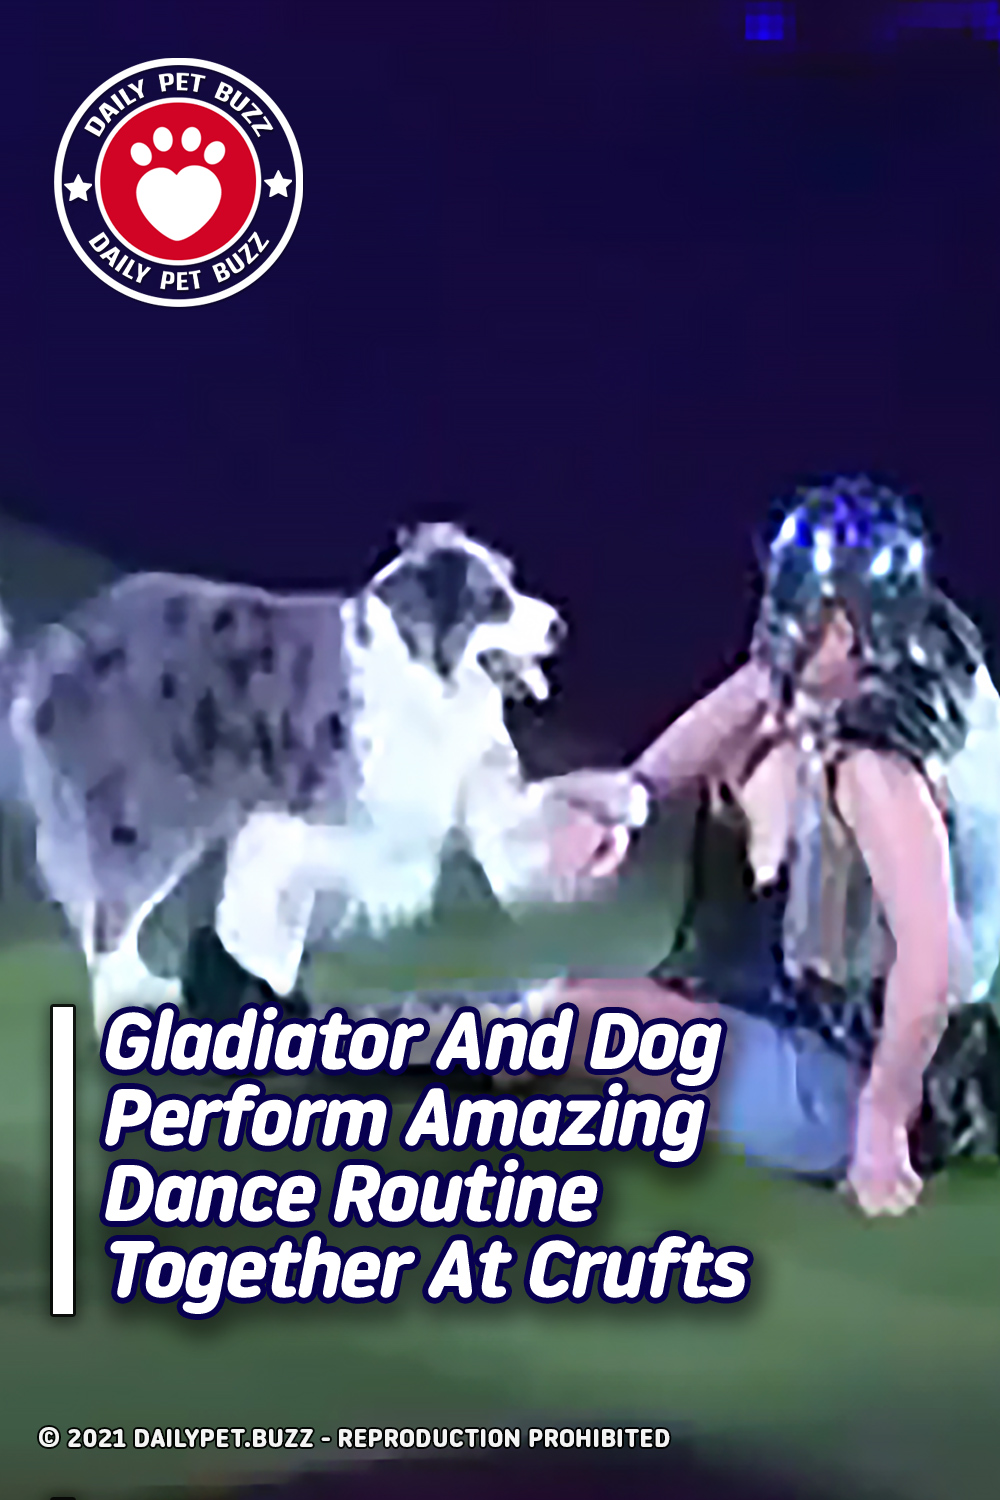 Gladiator And Dog Perform Amazing Dance Routine Together At Crufts